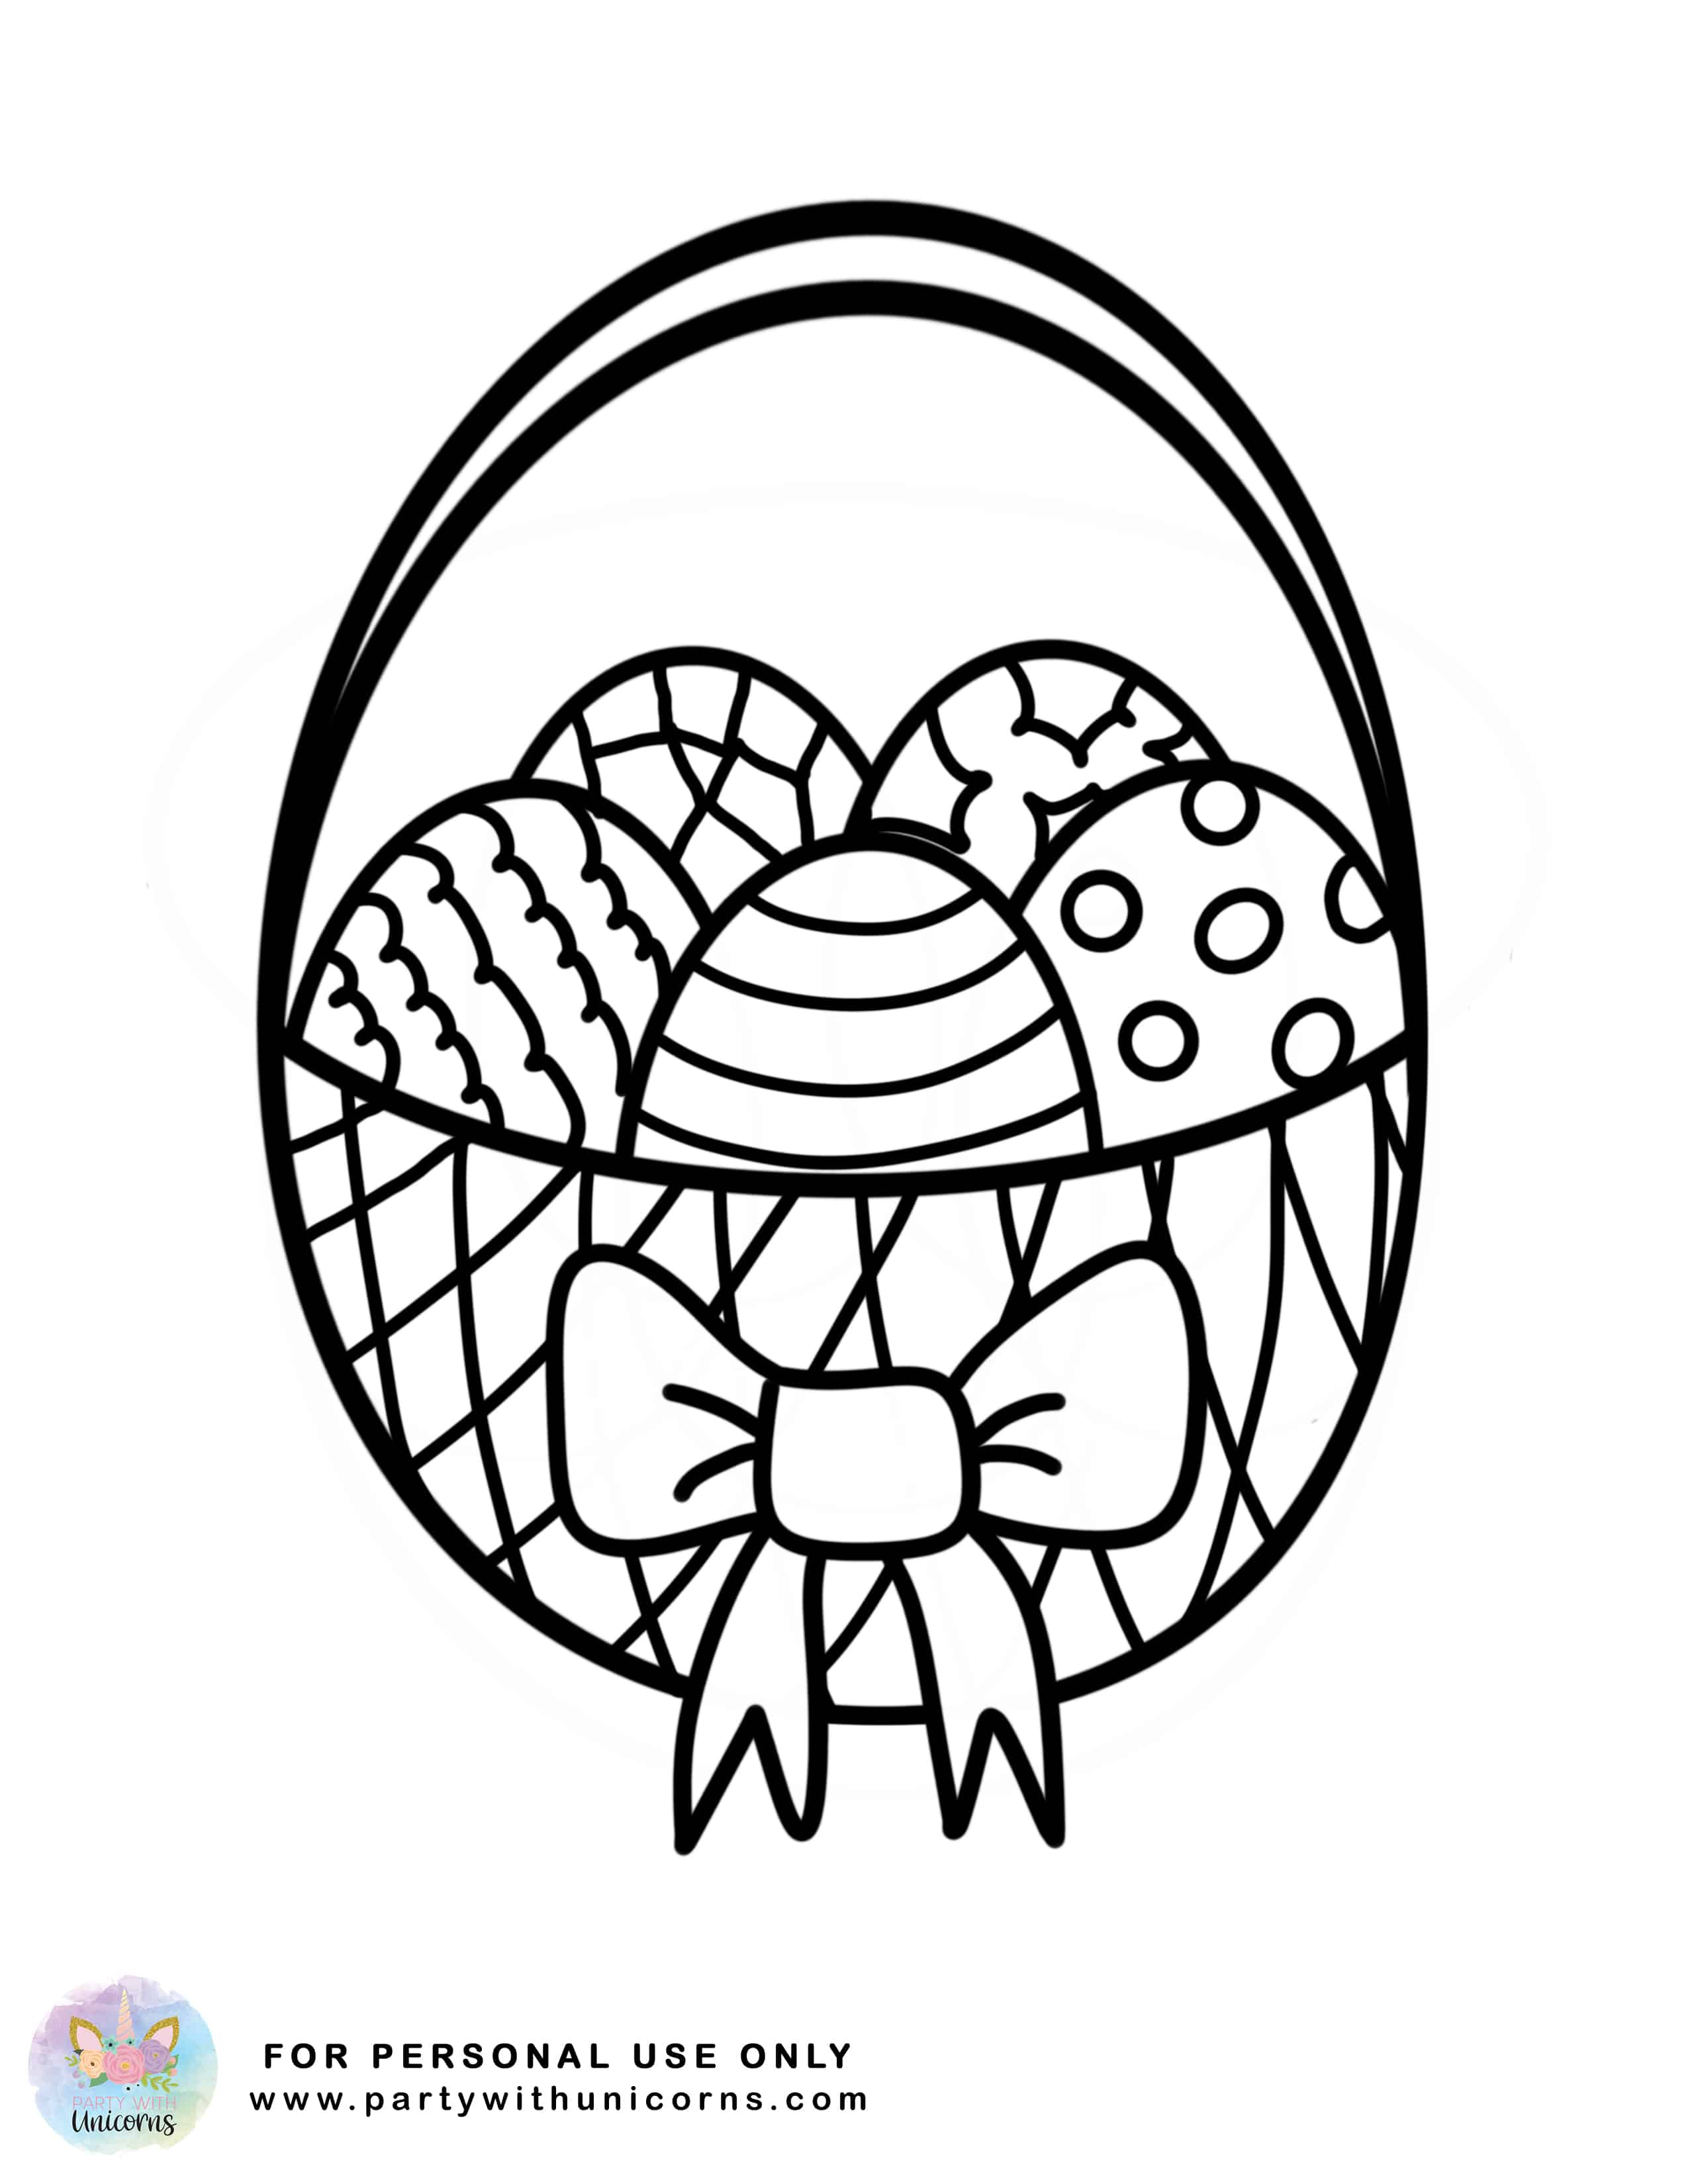 easter coloring easter coloring sheets free download party with unicorns easter coloring 1 1